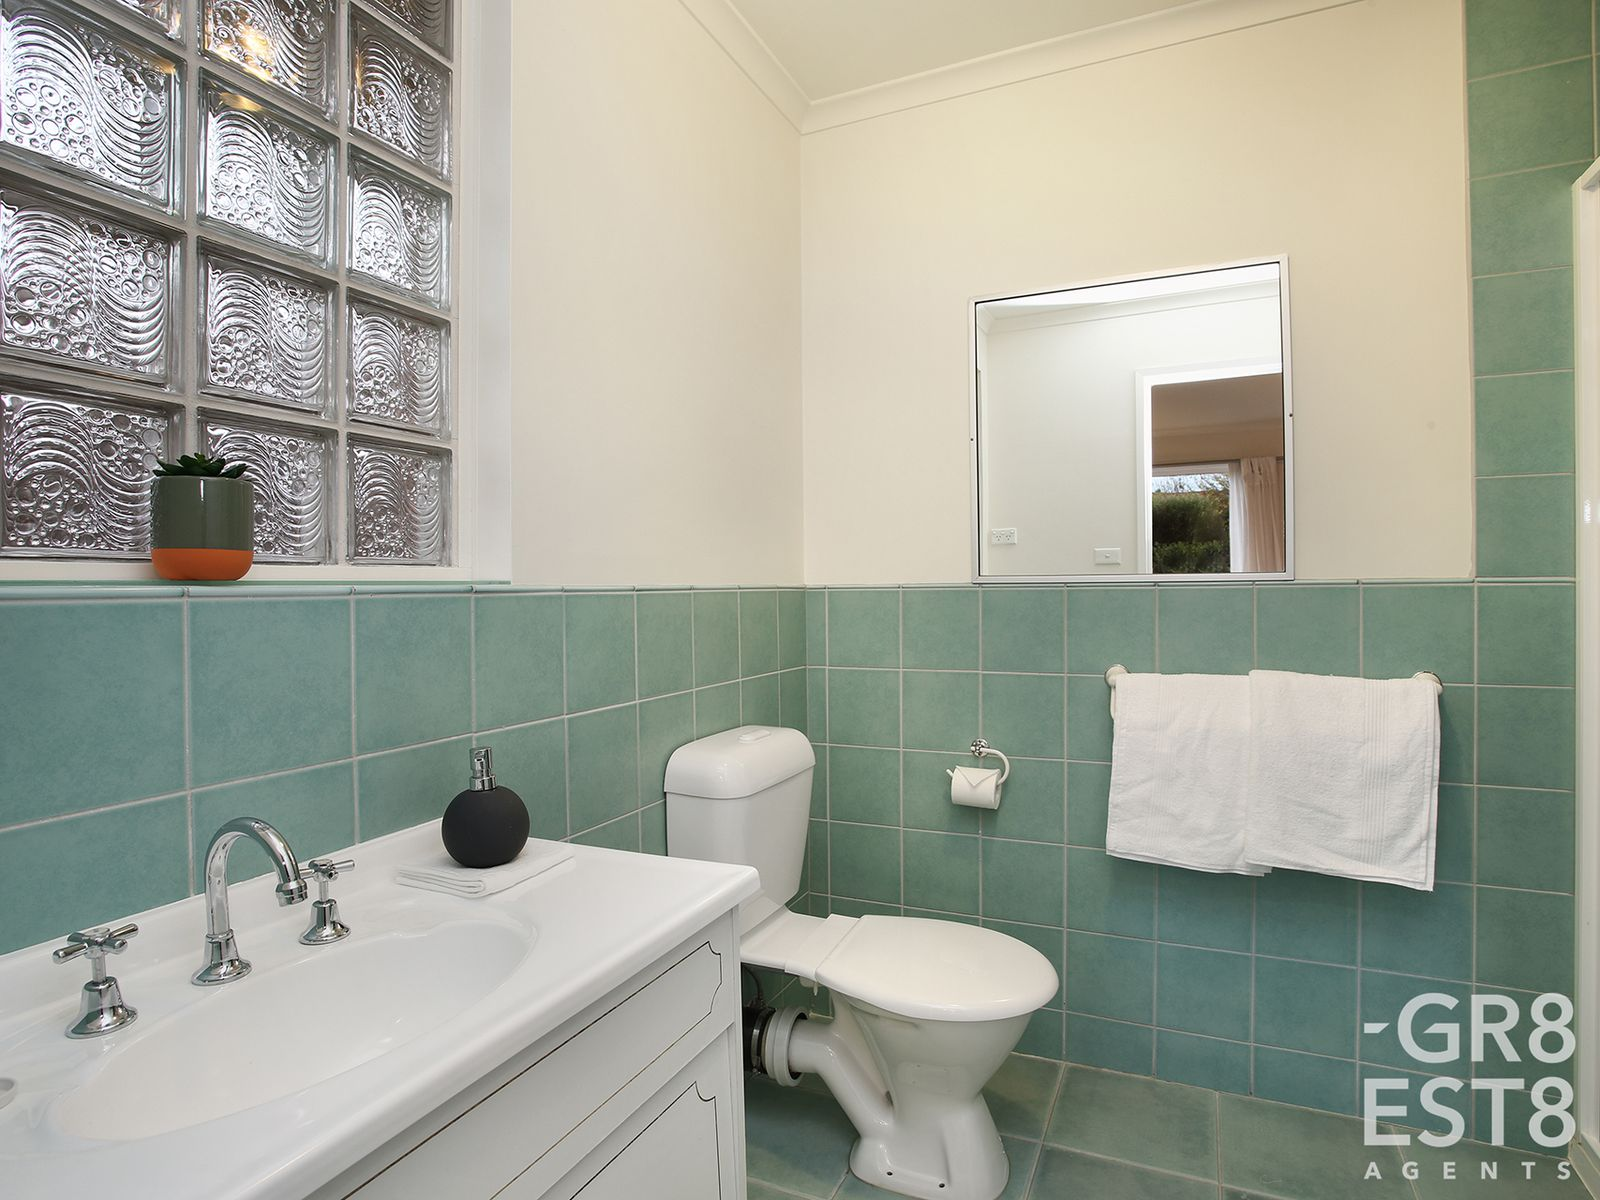 2 Francis Court, Narre Warren